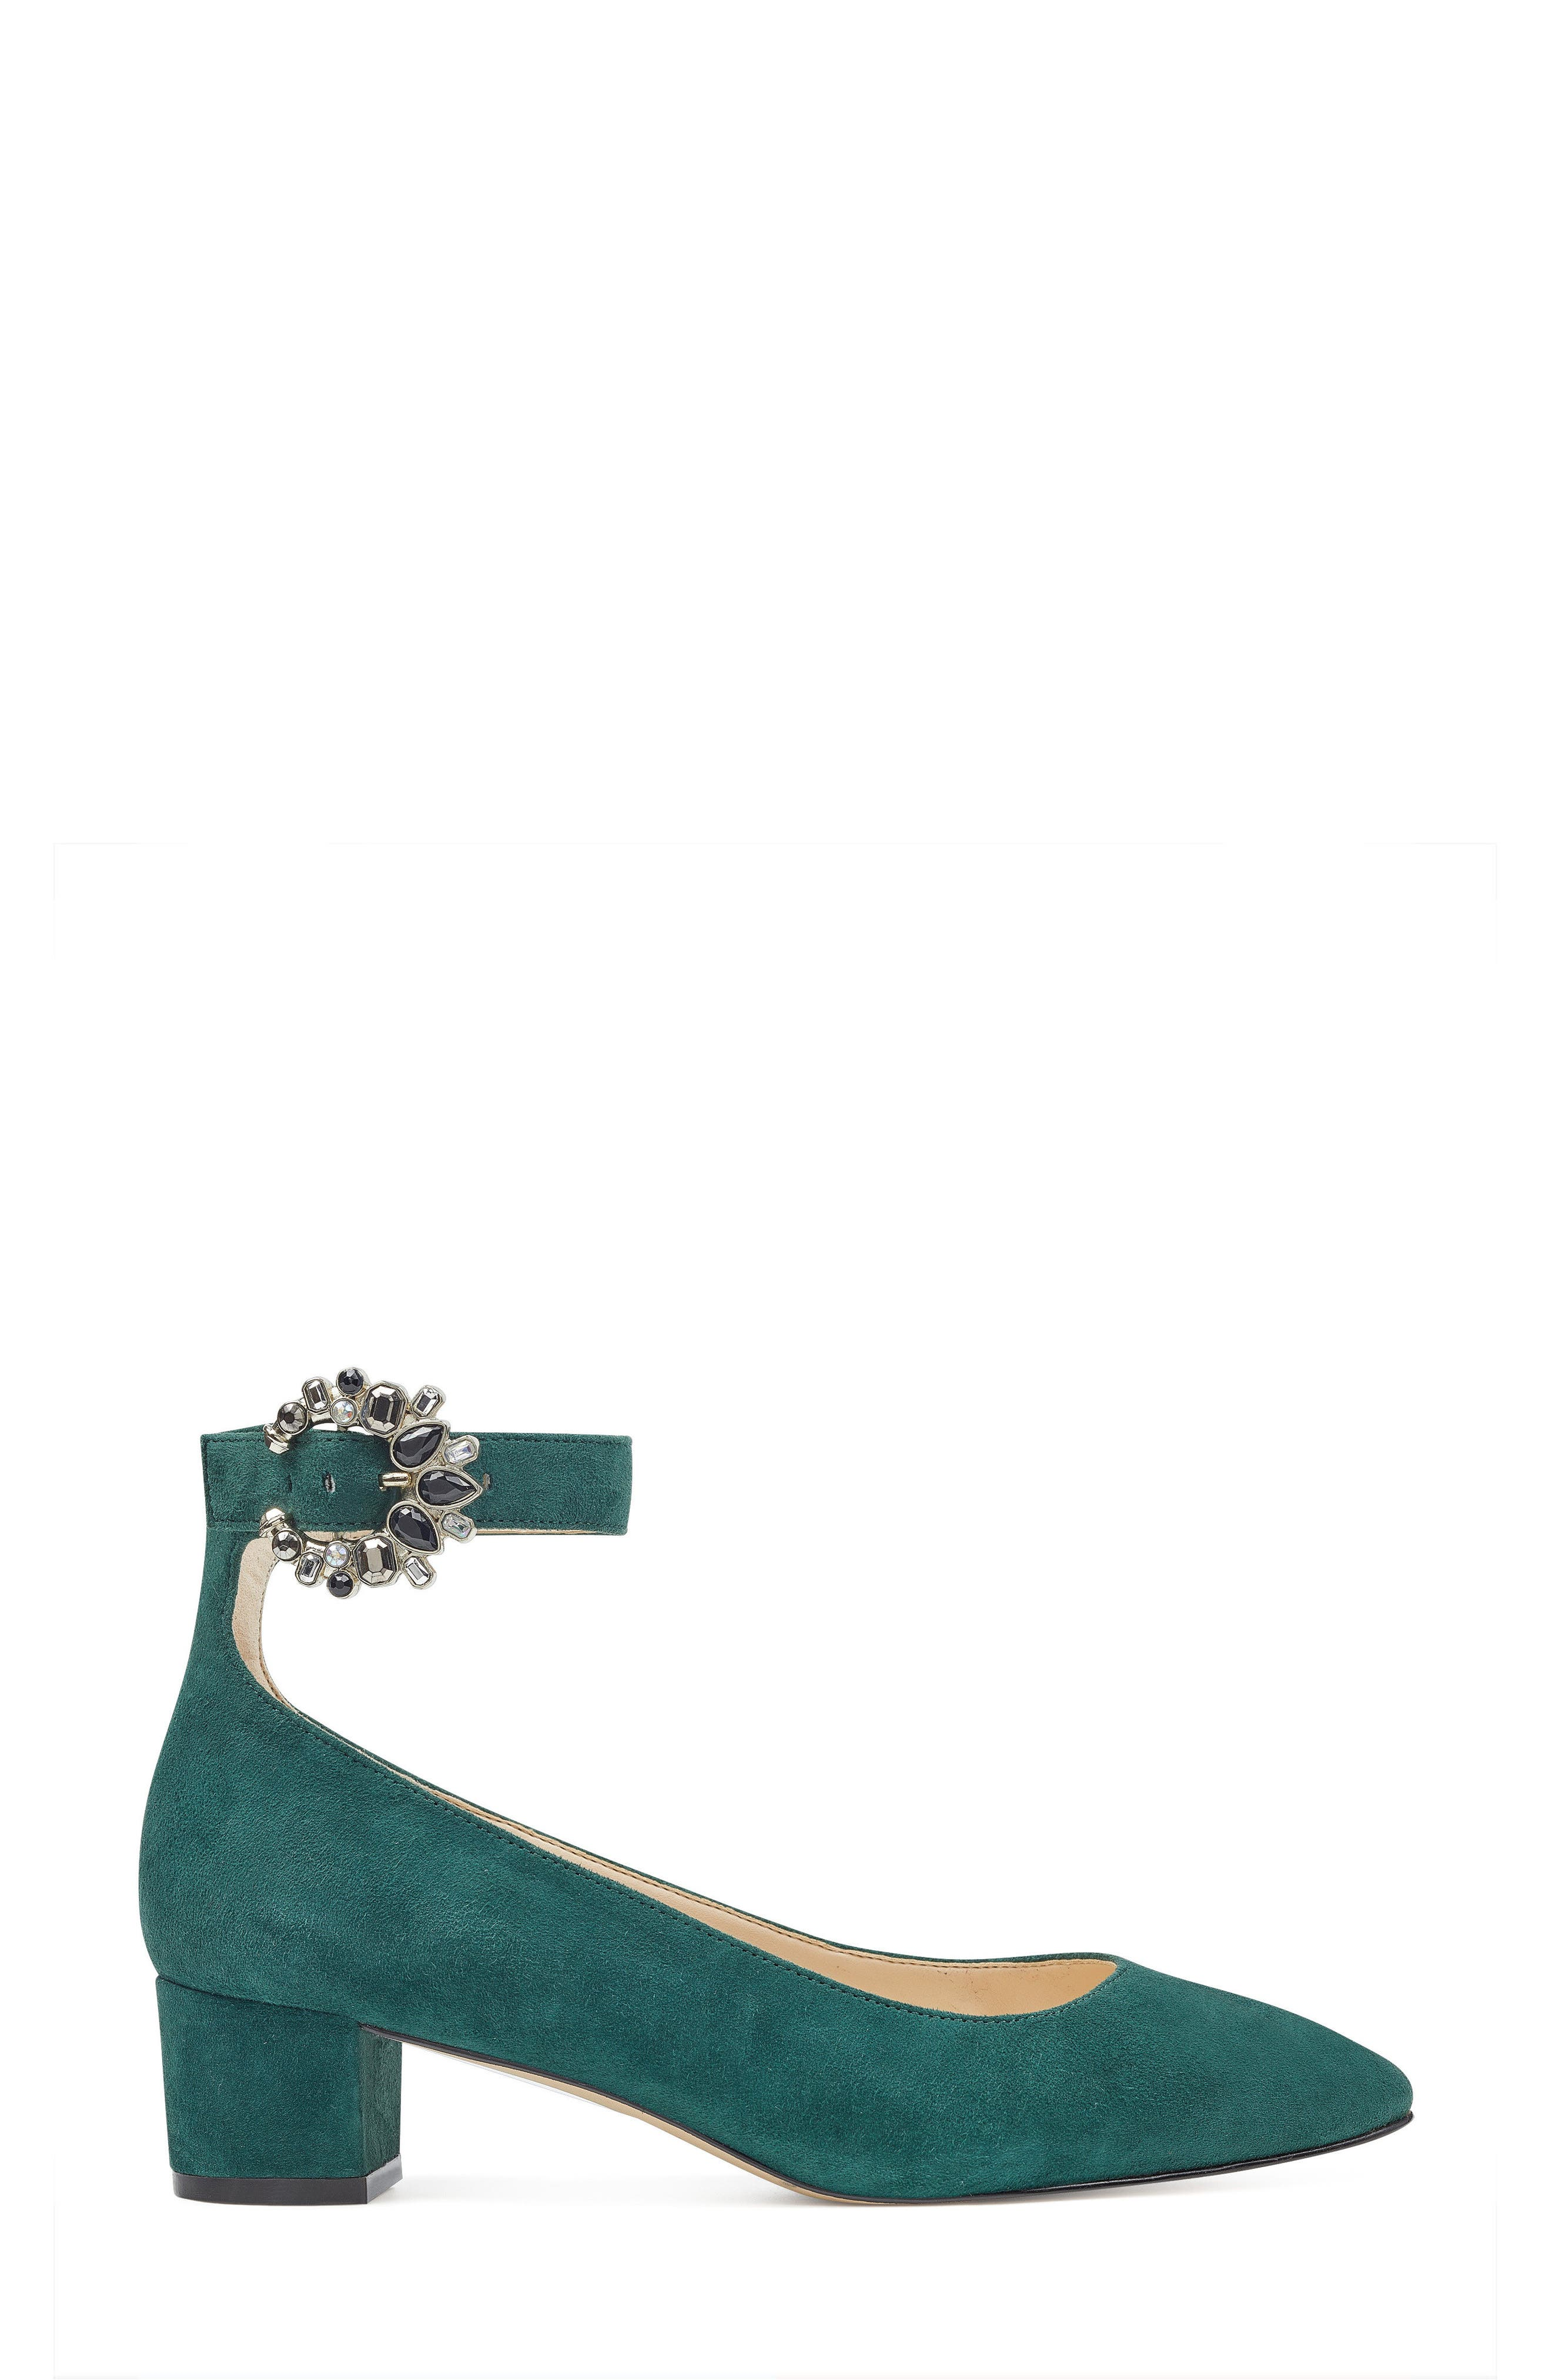 Bartly Ankle Strap Pump,                             Alternate thumbnail 9, color,